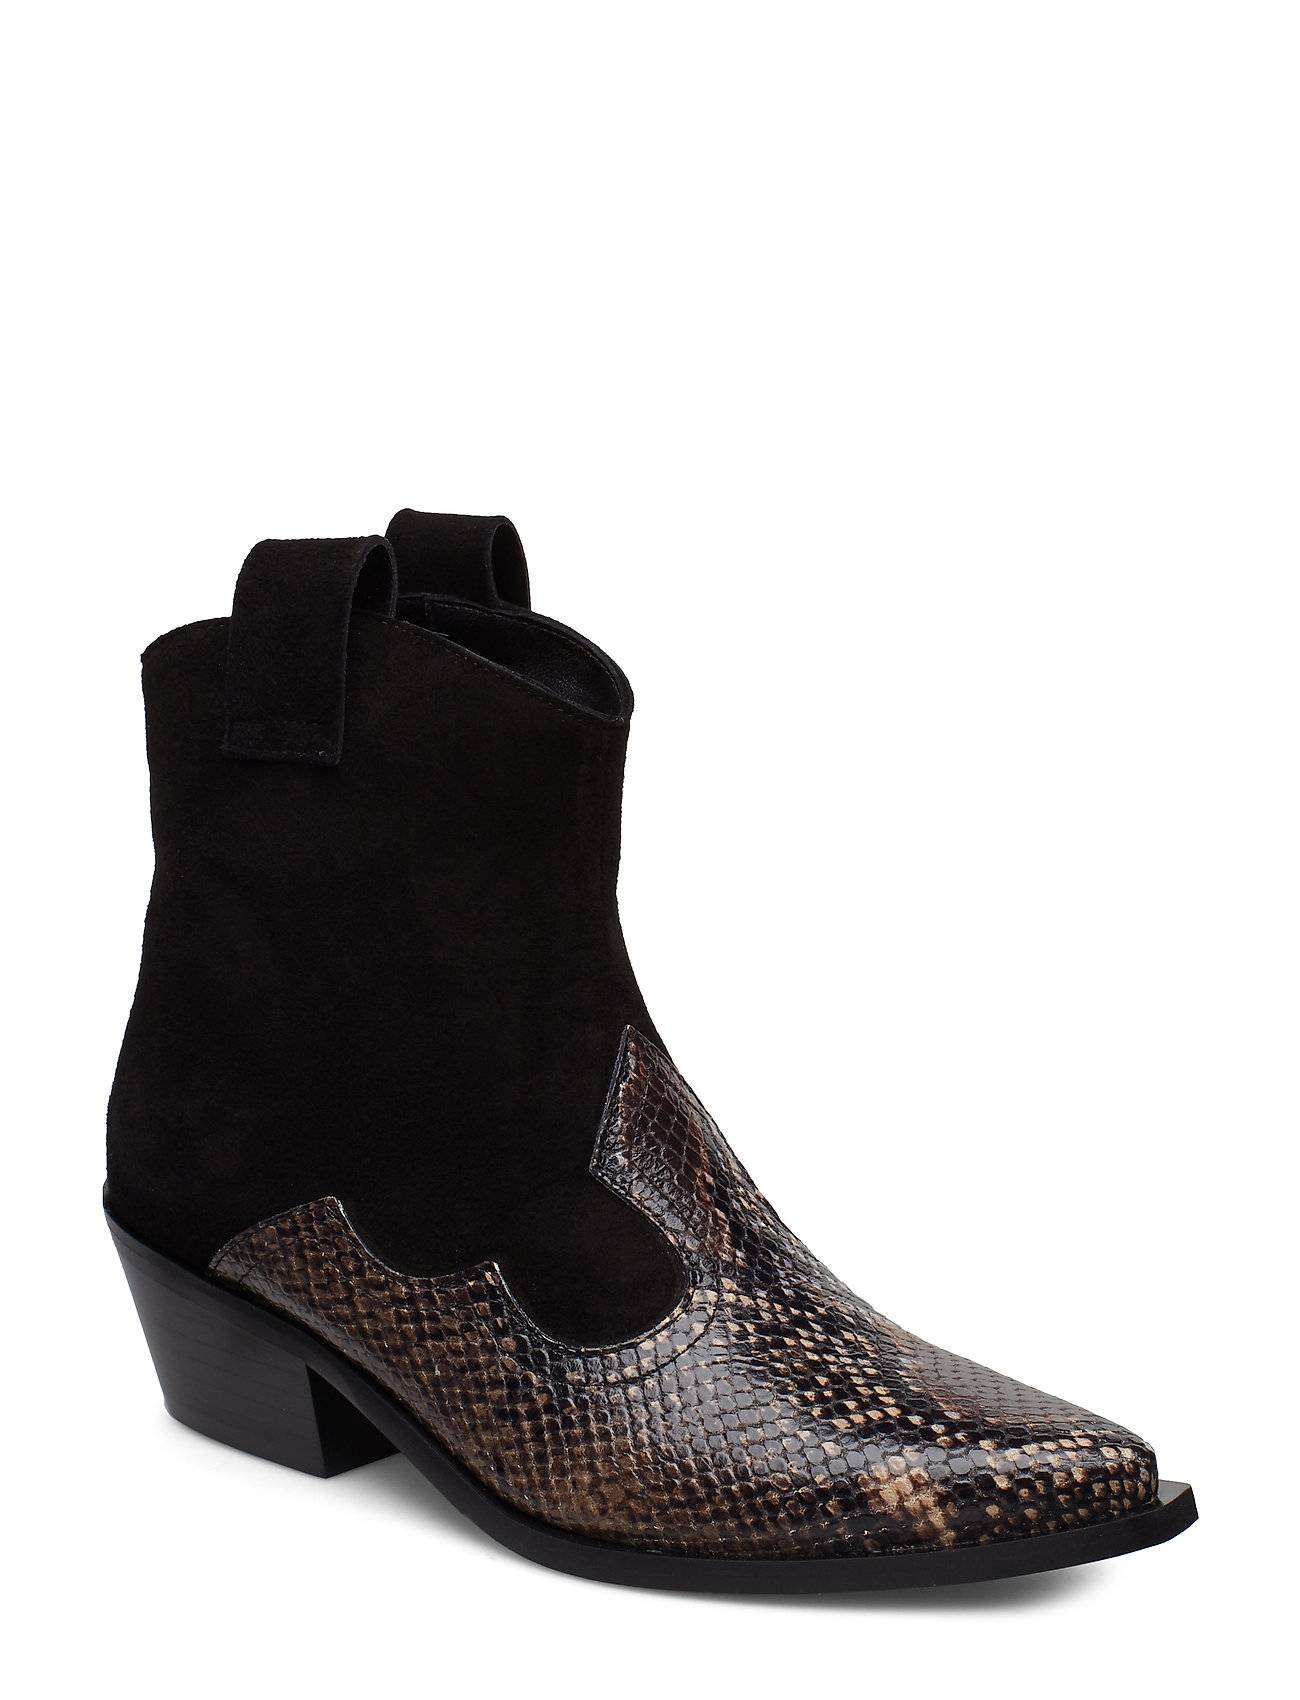 Apair Western Strap Shoes Boots Ankle Boots Ankle Boots With Heel Ruskea Apair